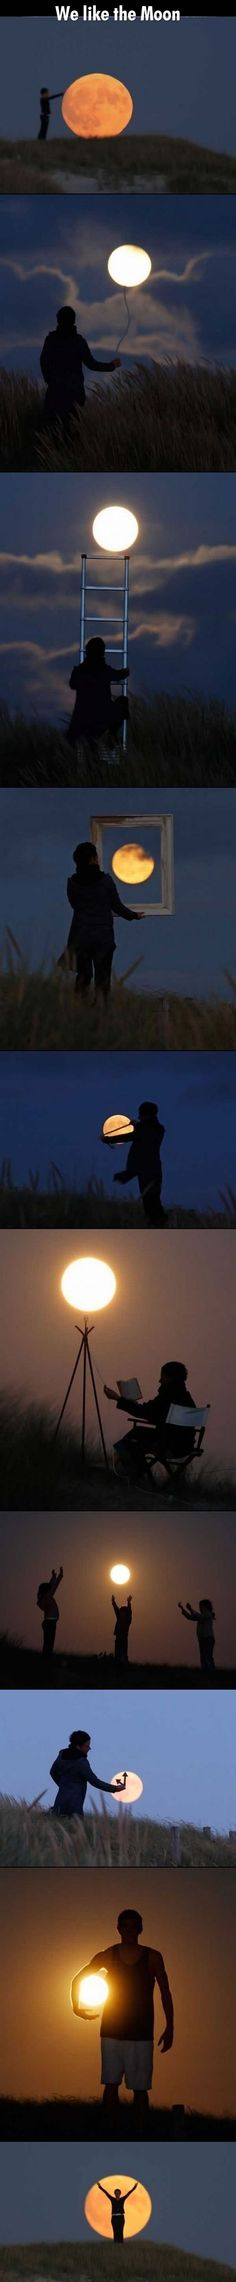 Fun ways to photograph the moon.